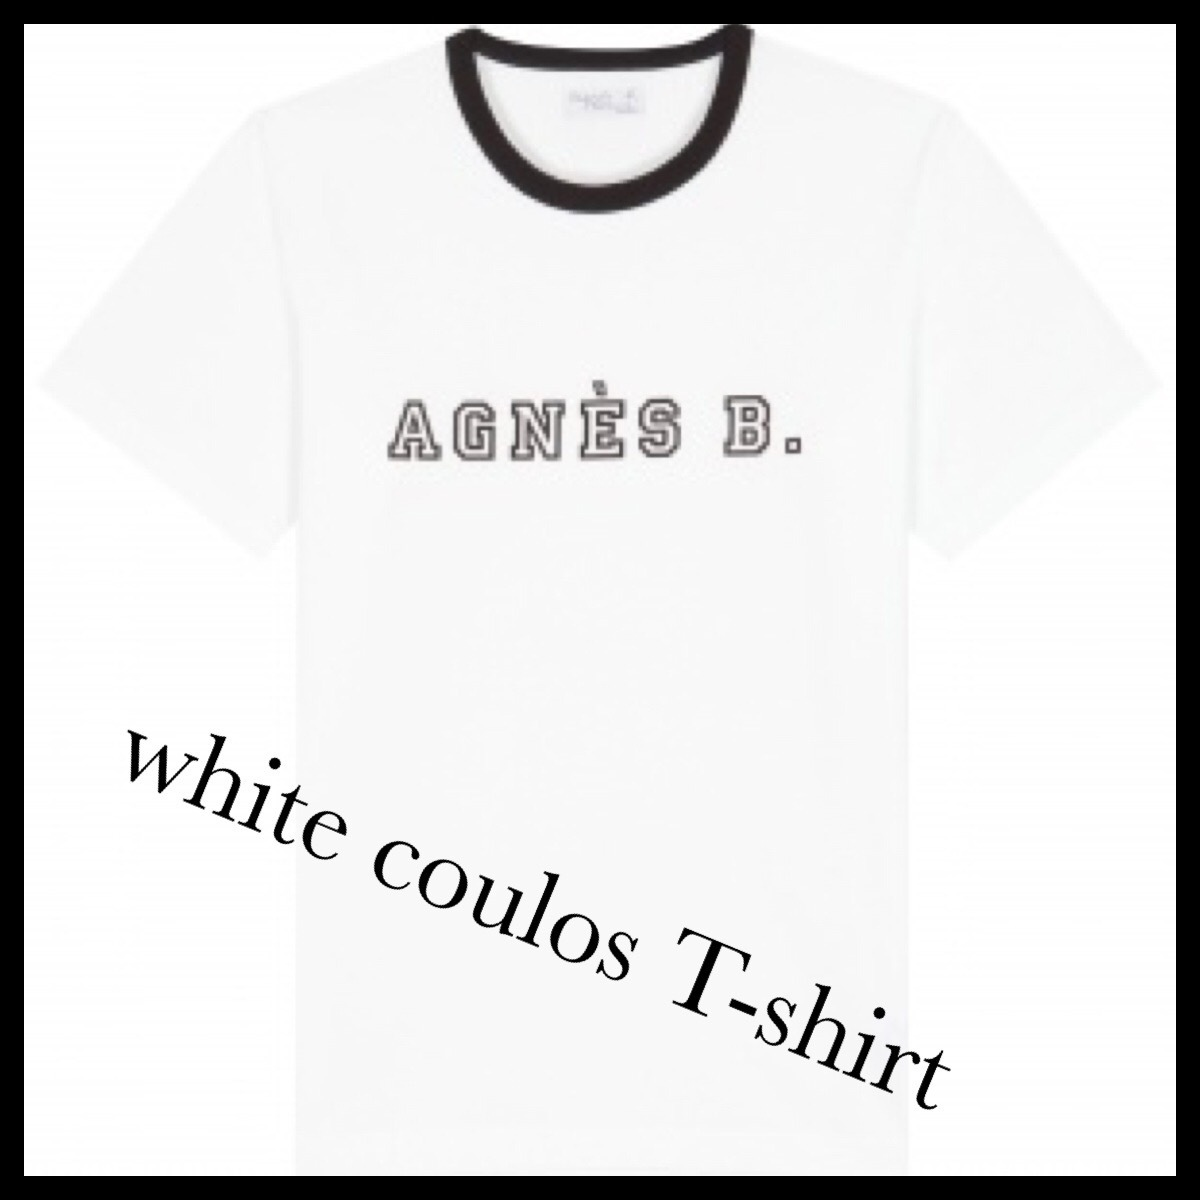 Agnes b / T-Shirt / coulos T-shirt (white/black)